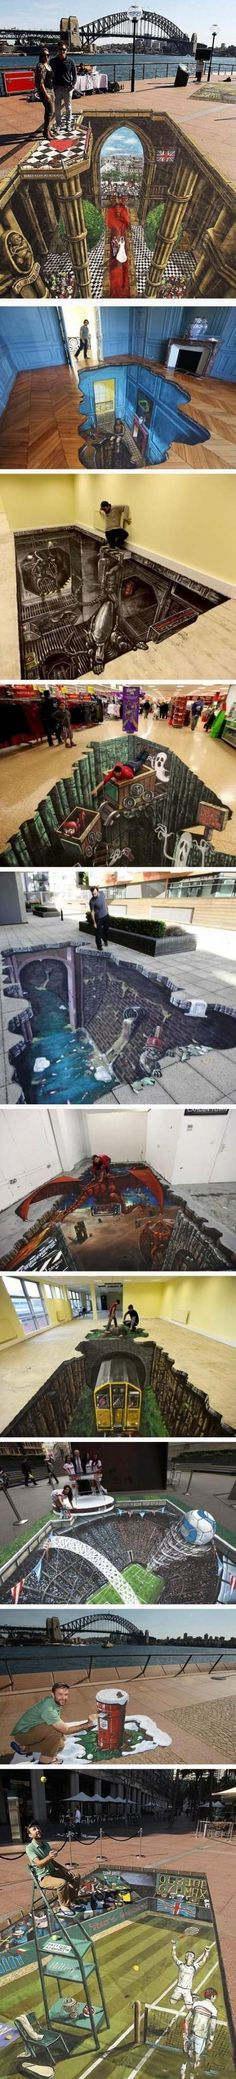 Top 10 3D pavement artworks